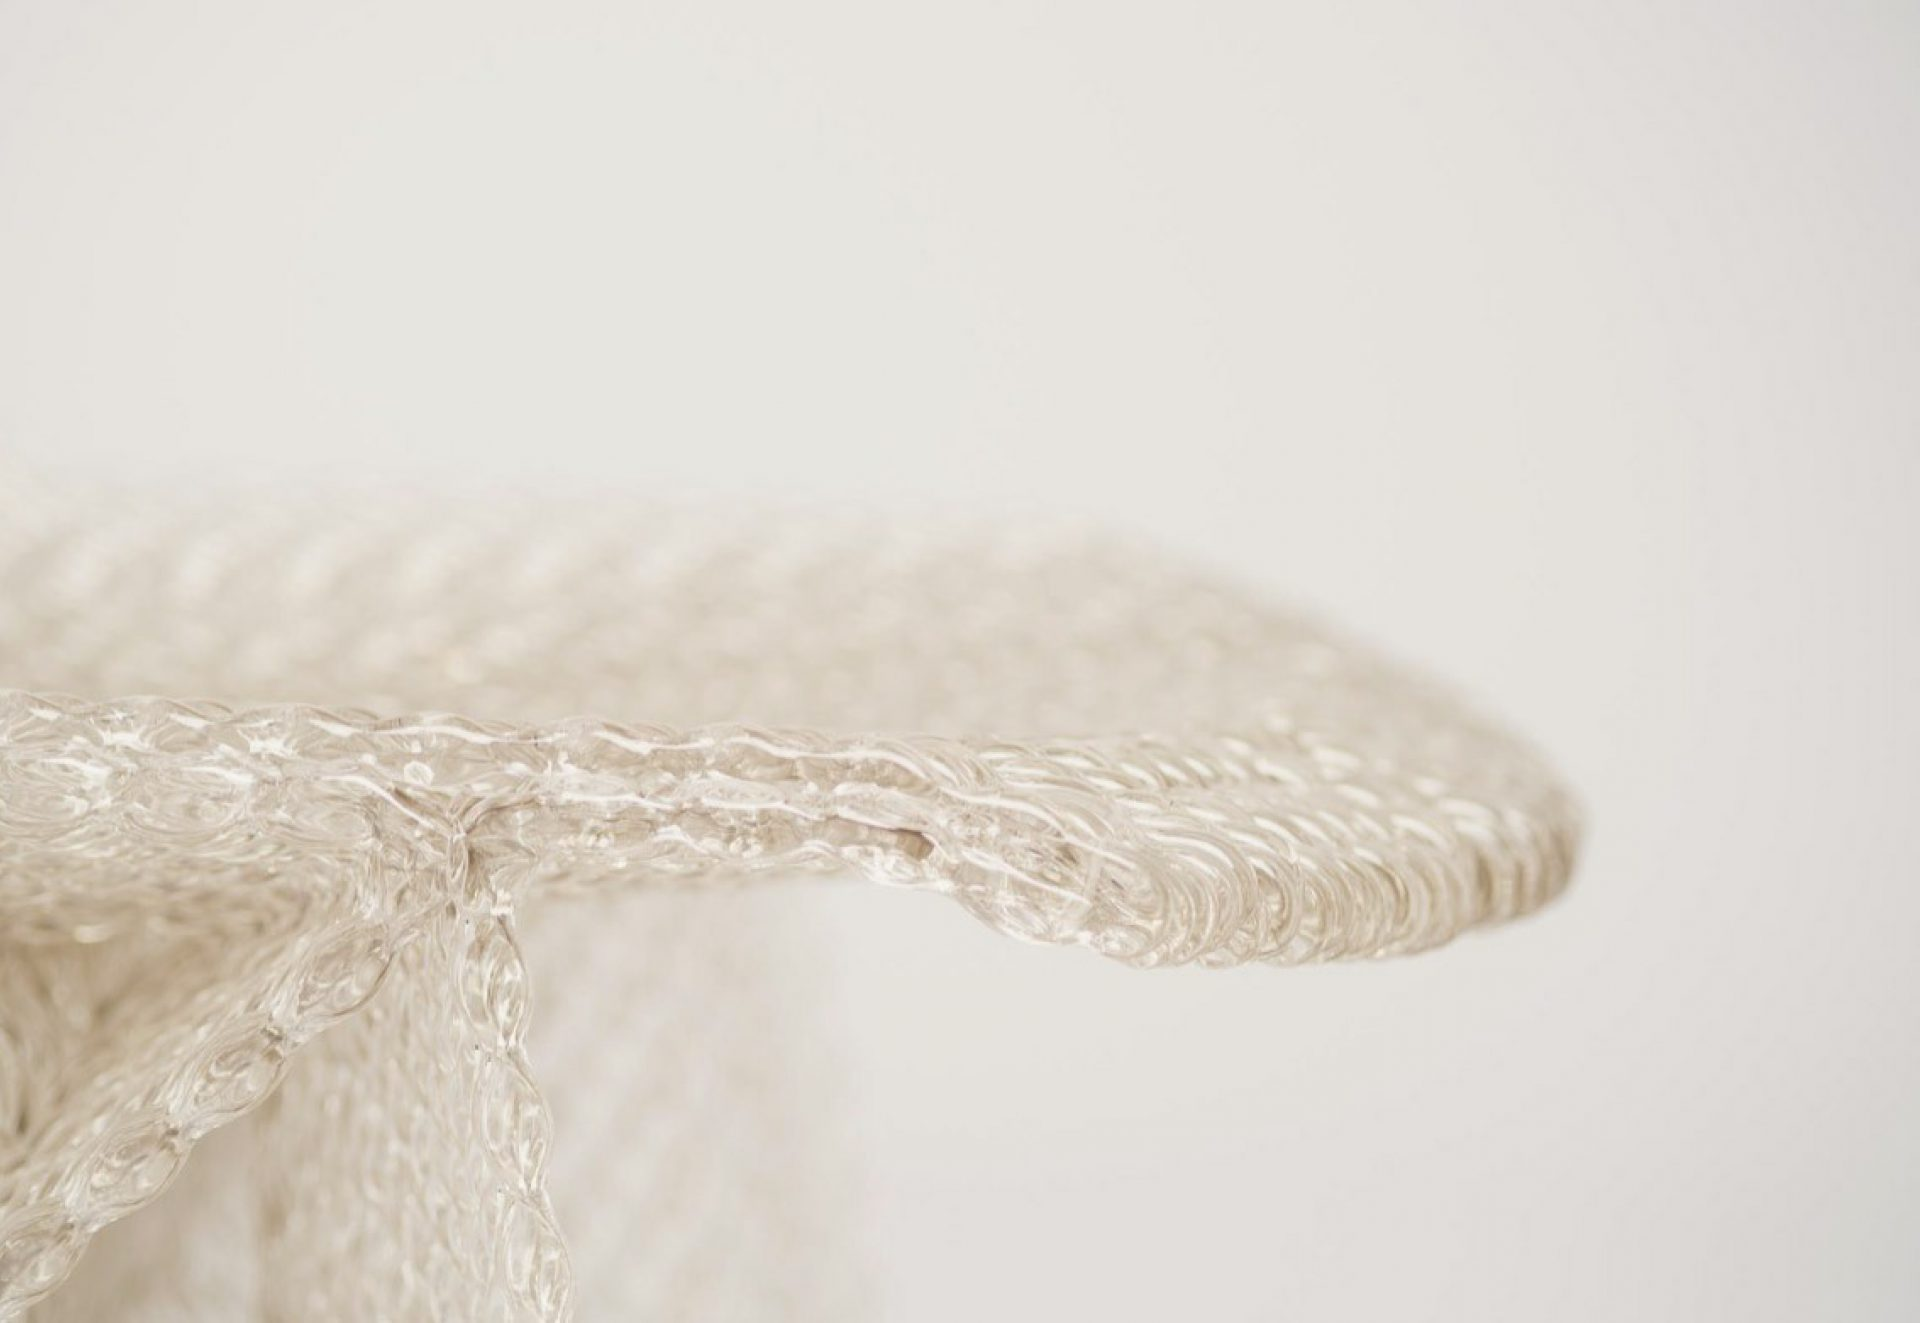 A transparent Endless Chair, extruded from twinkling recycled polycarbonate